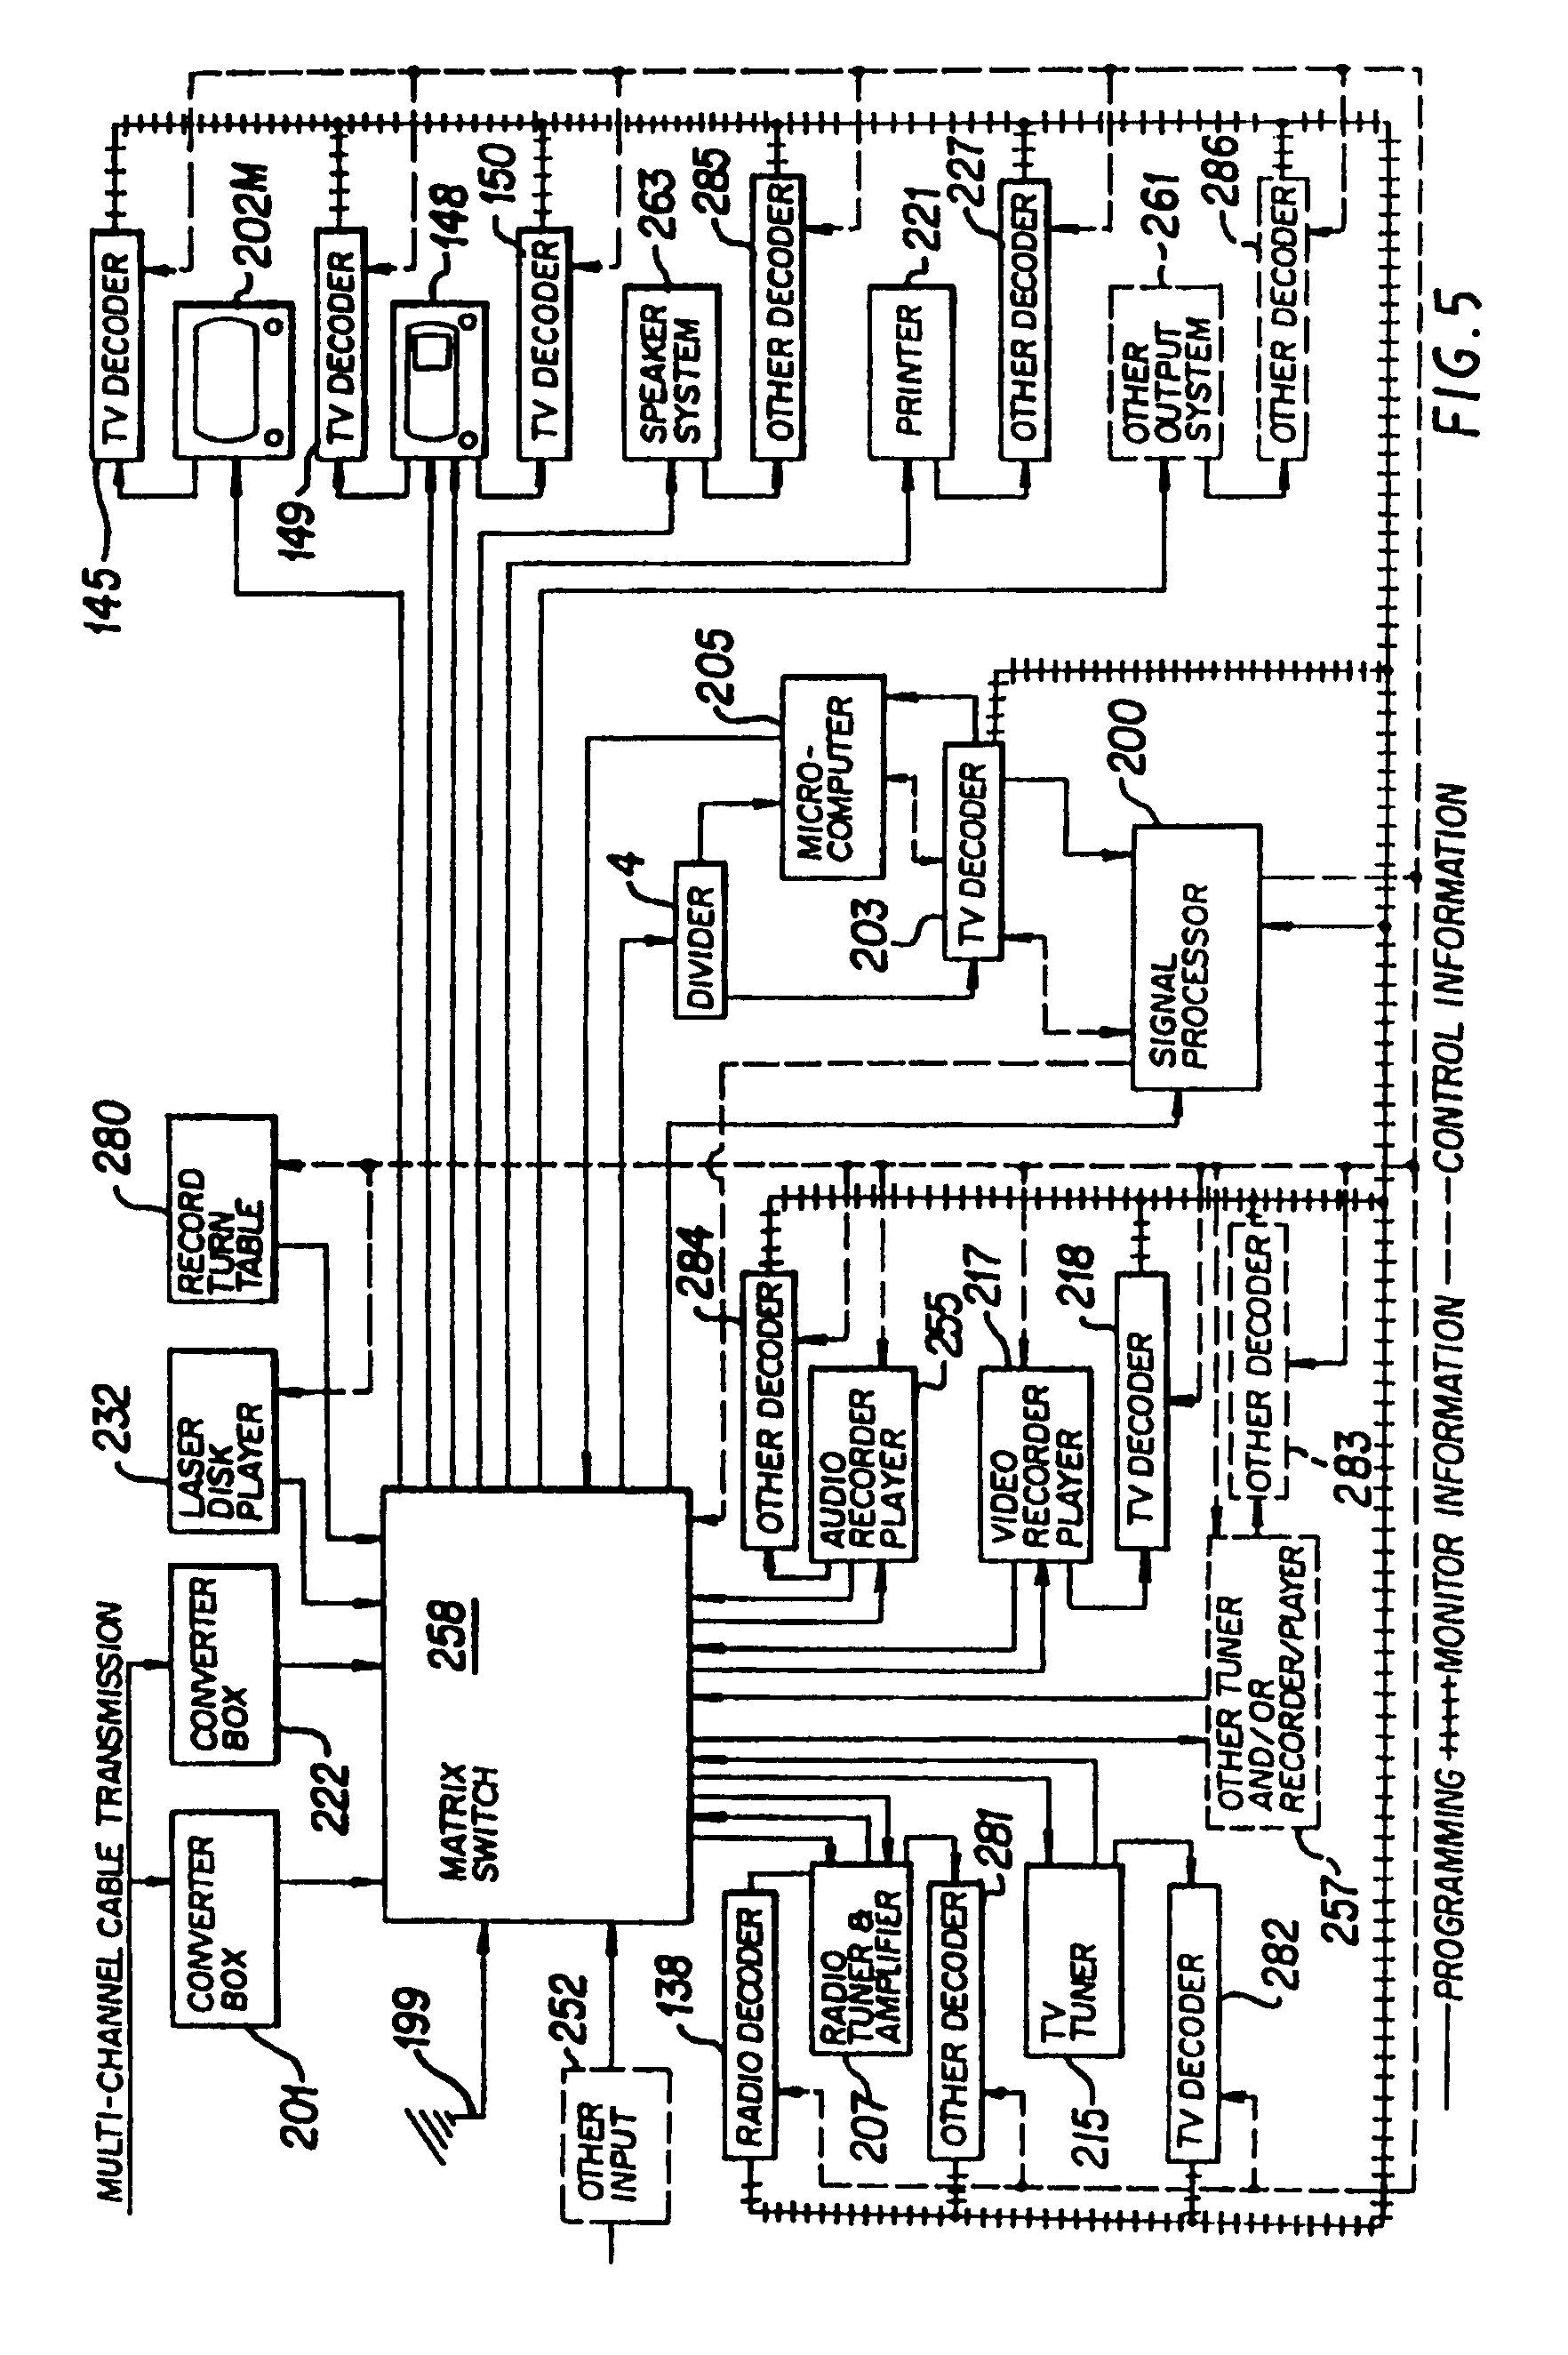 Us7992169b1 Signal Processing Apparatus And Methods Google Patents Array Connected To Port 1 Interrupter 3